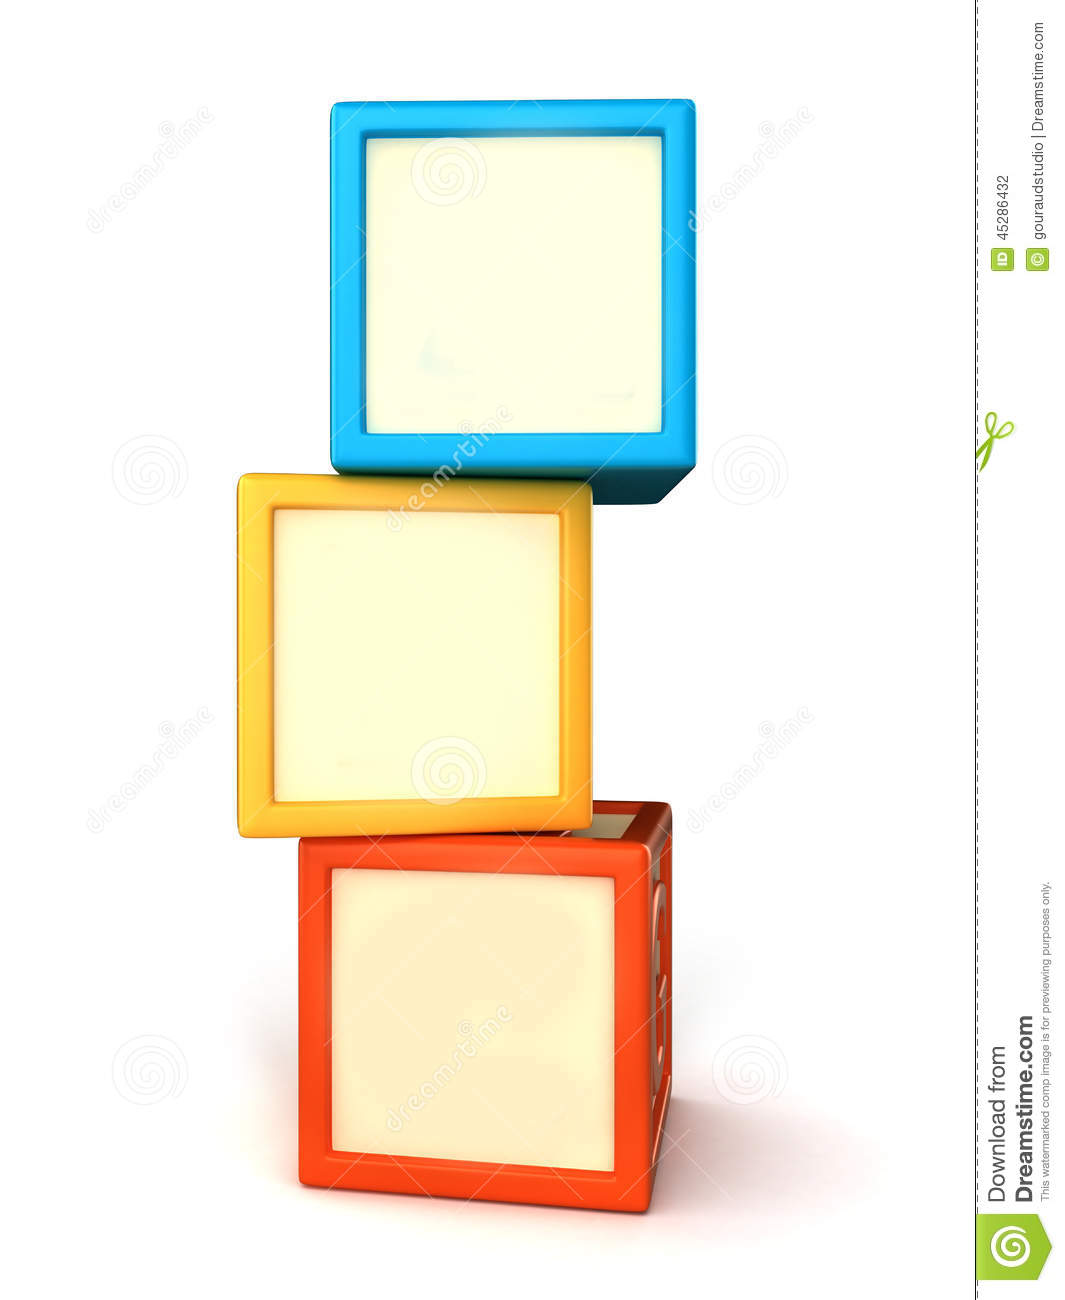 Building Blocks Stock Illustration - Image: 45286432